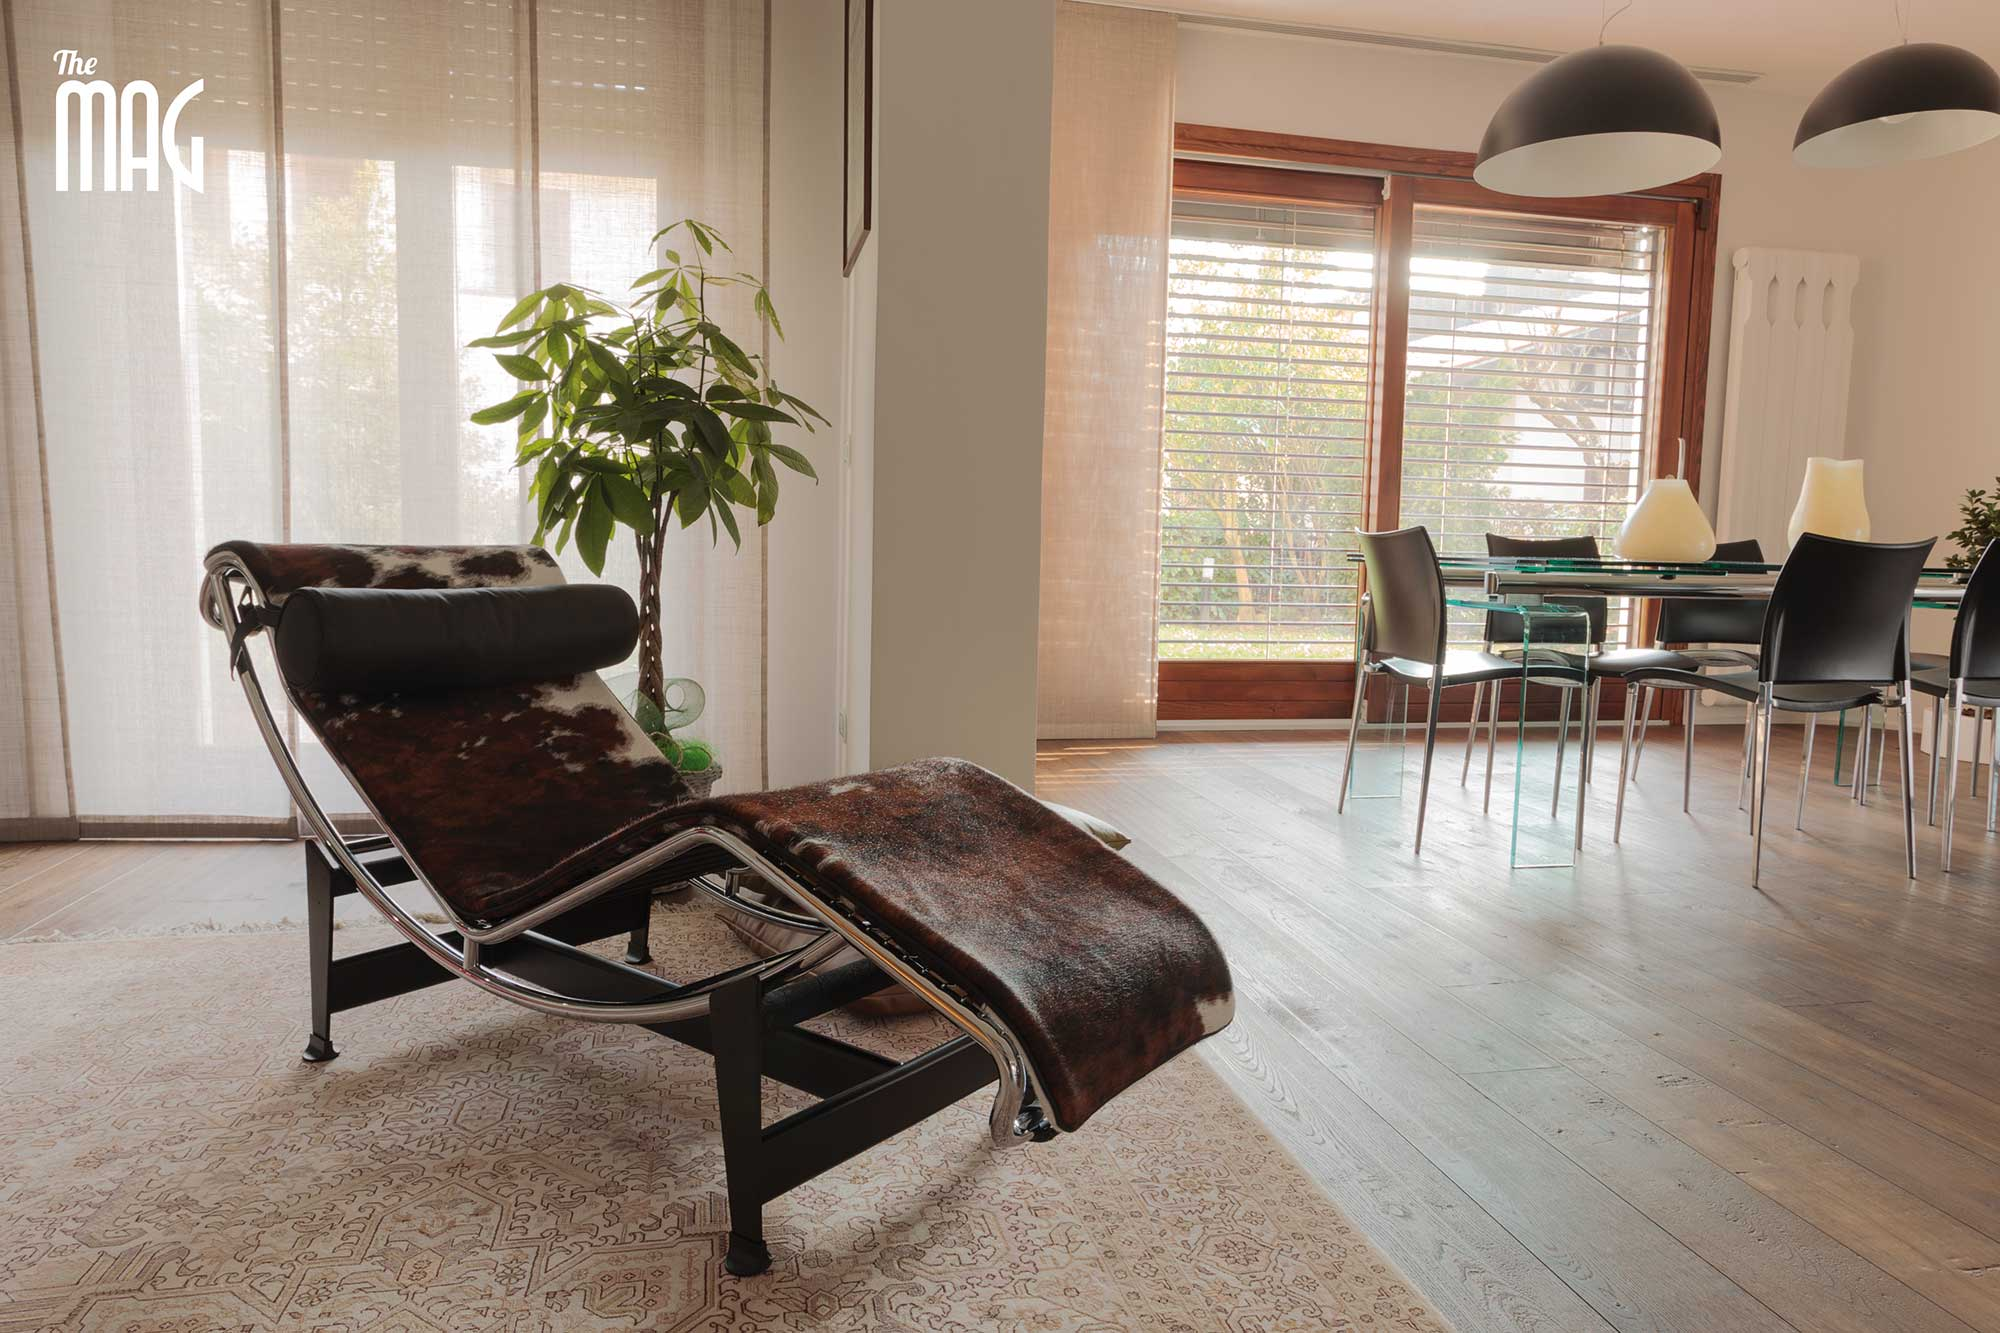 Our Home - the mag - comfortable elegance